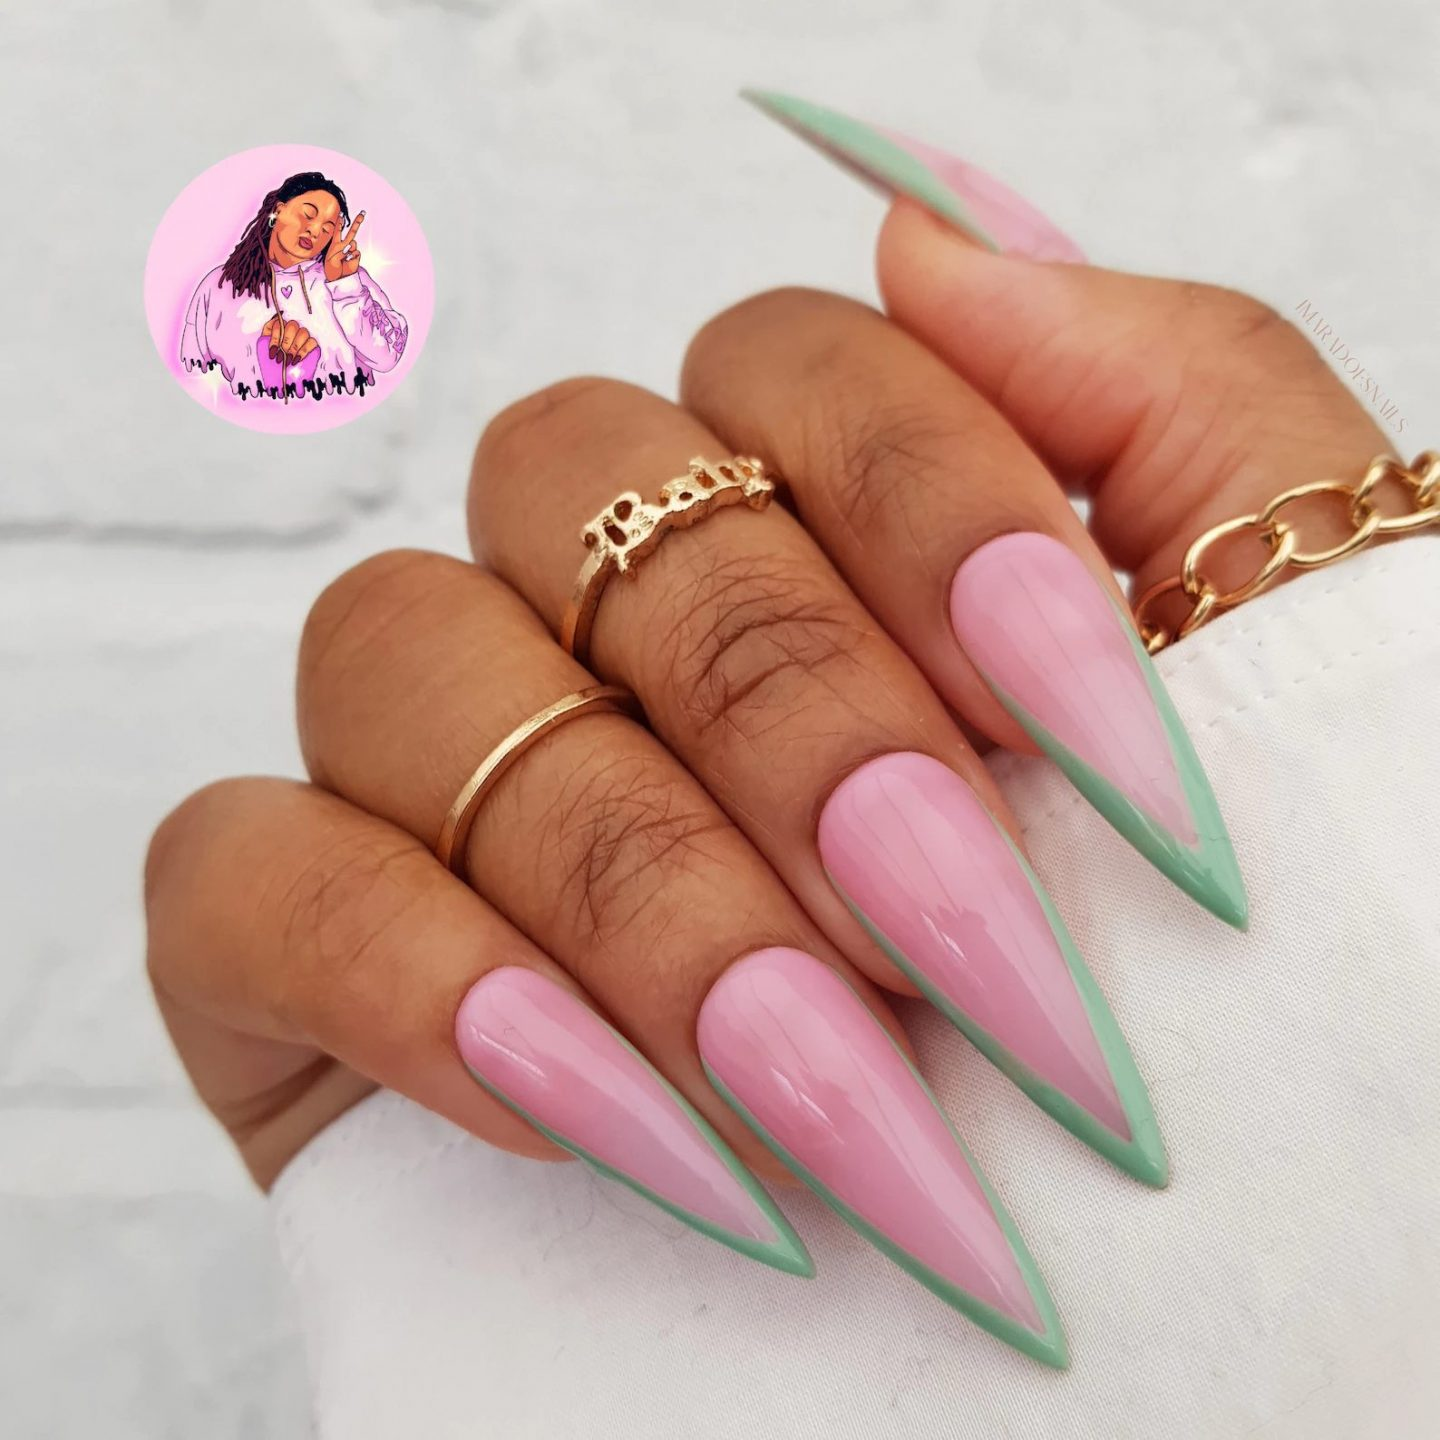 Mint green French tip nails in stiletto shape